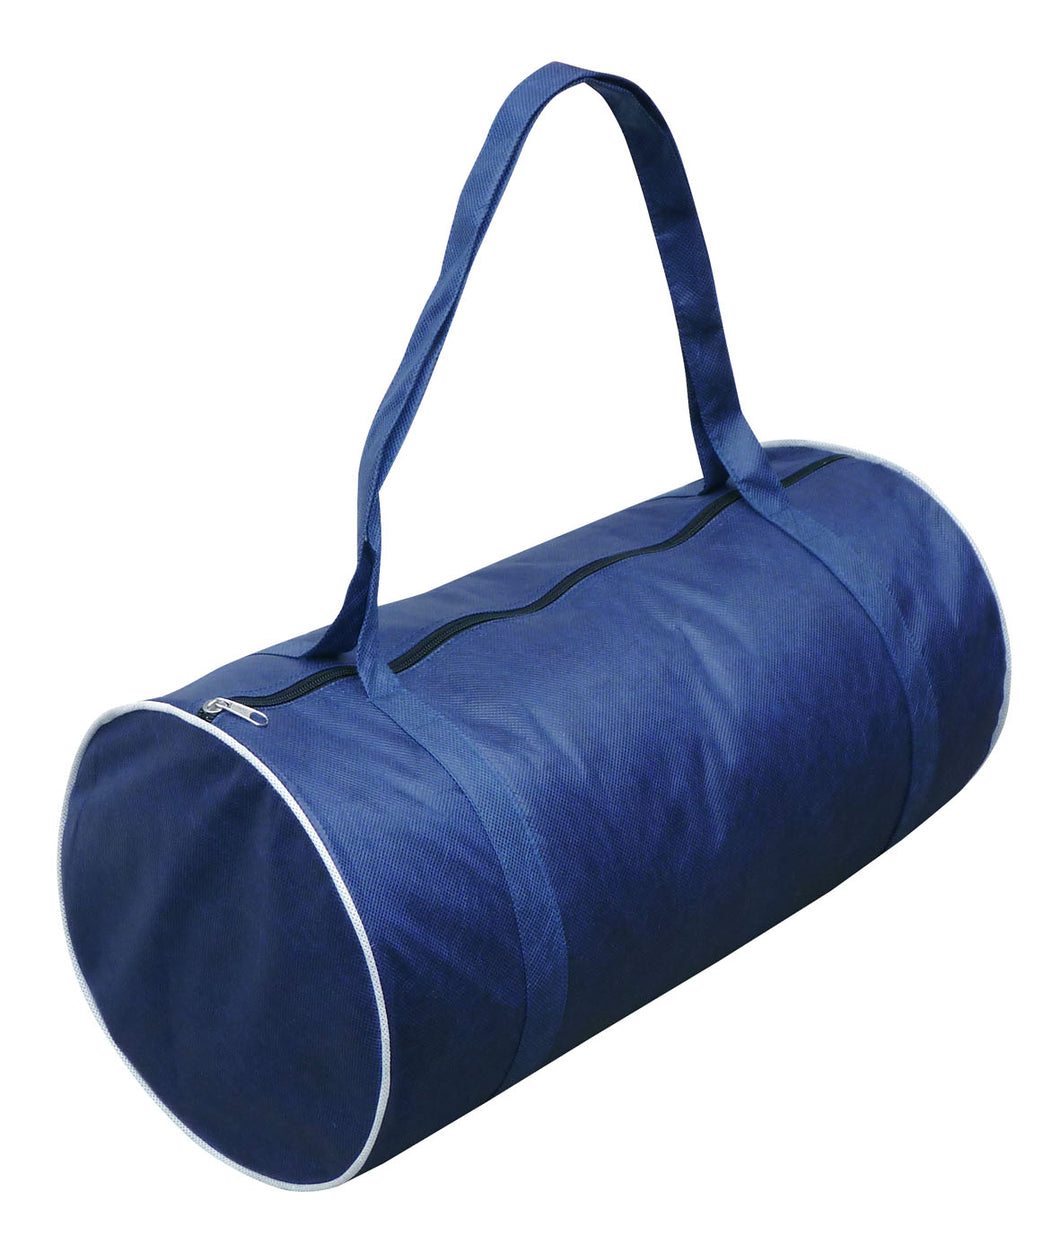 Non-Woven Sports Bag